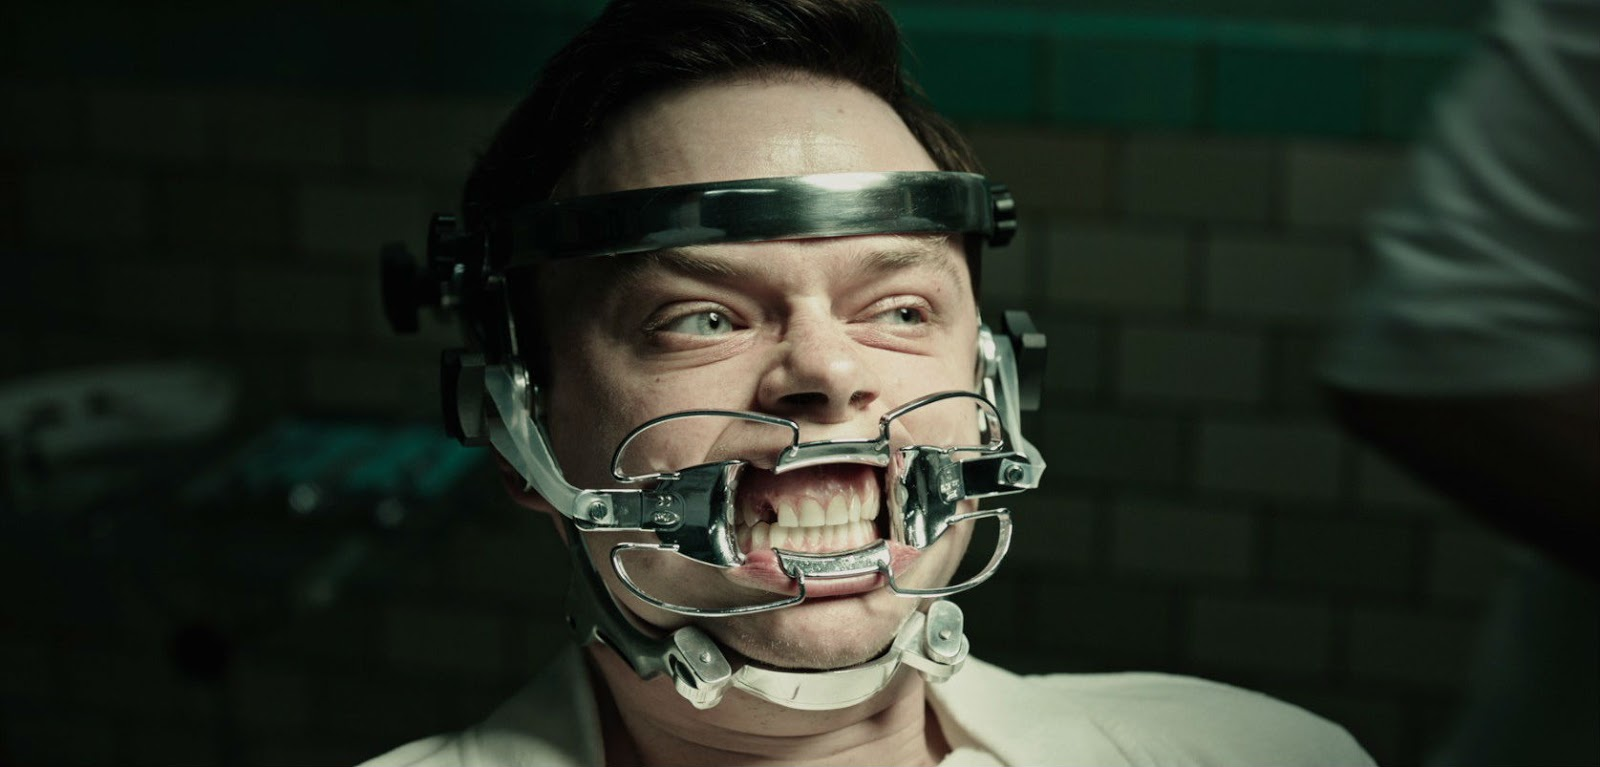 MOVIES: A Cure for Wellness - Review